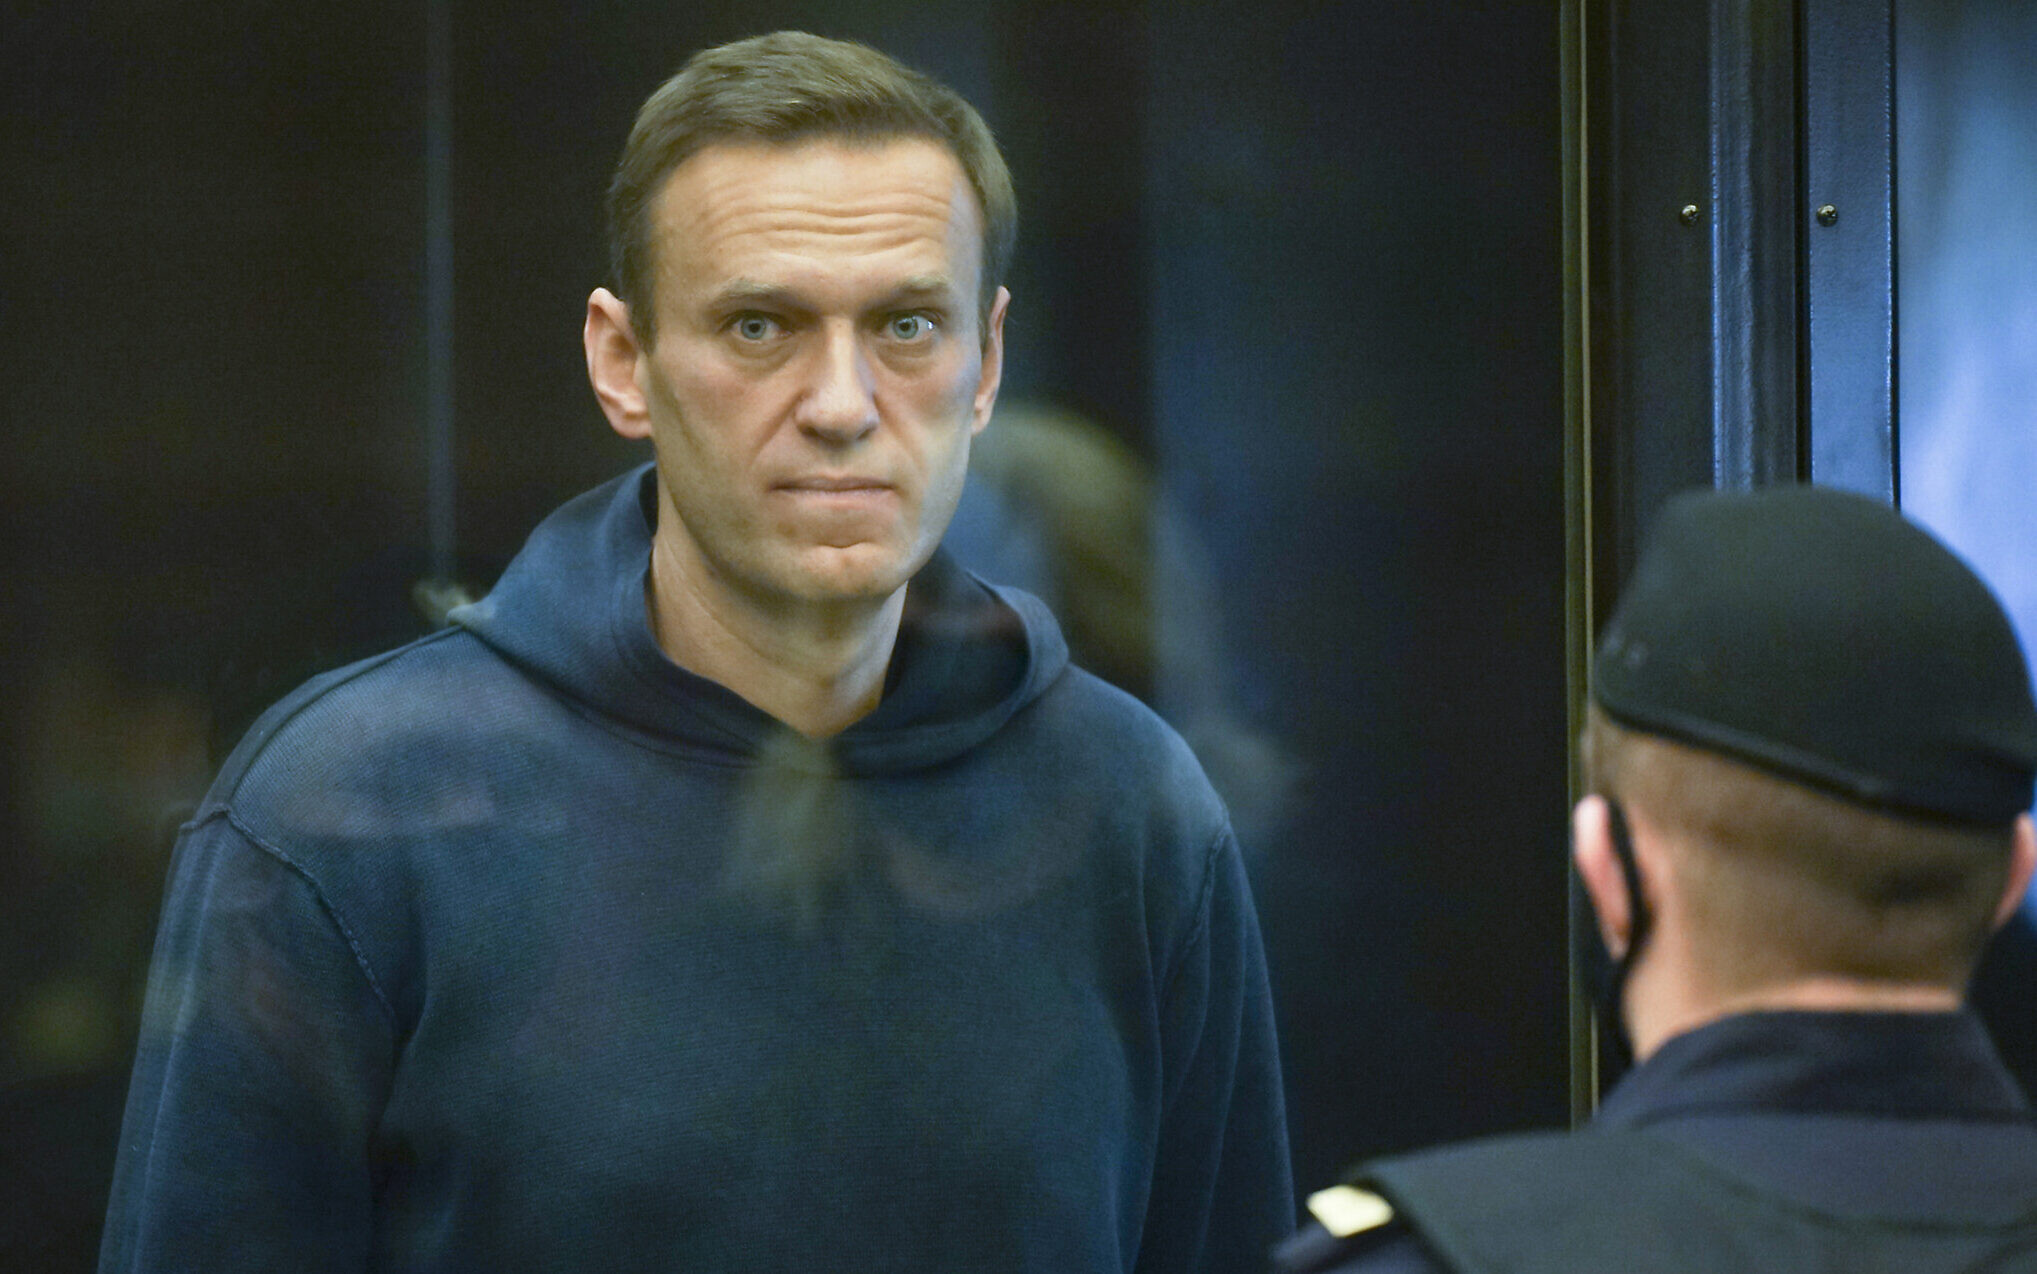 EU Says Outlawing of Kremlin Critic Navalny 'Unfounded Decision'